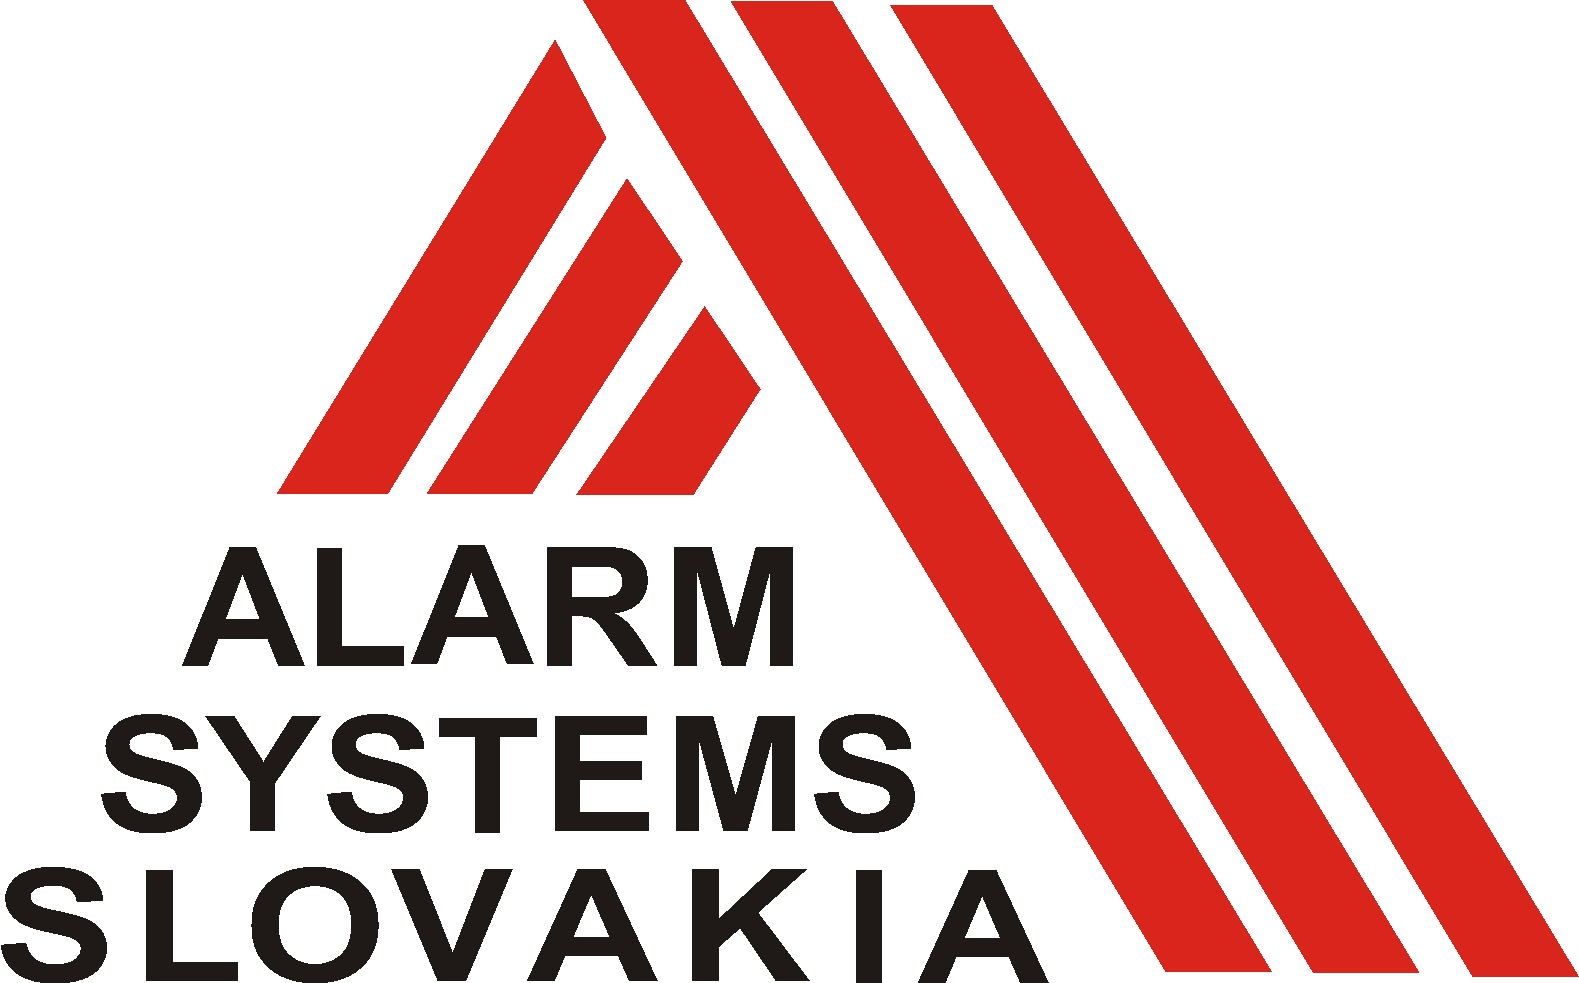 Slovak alarms s.r.o.